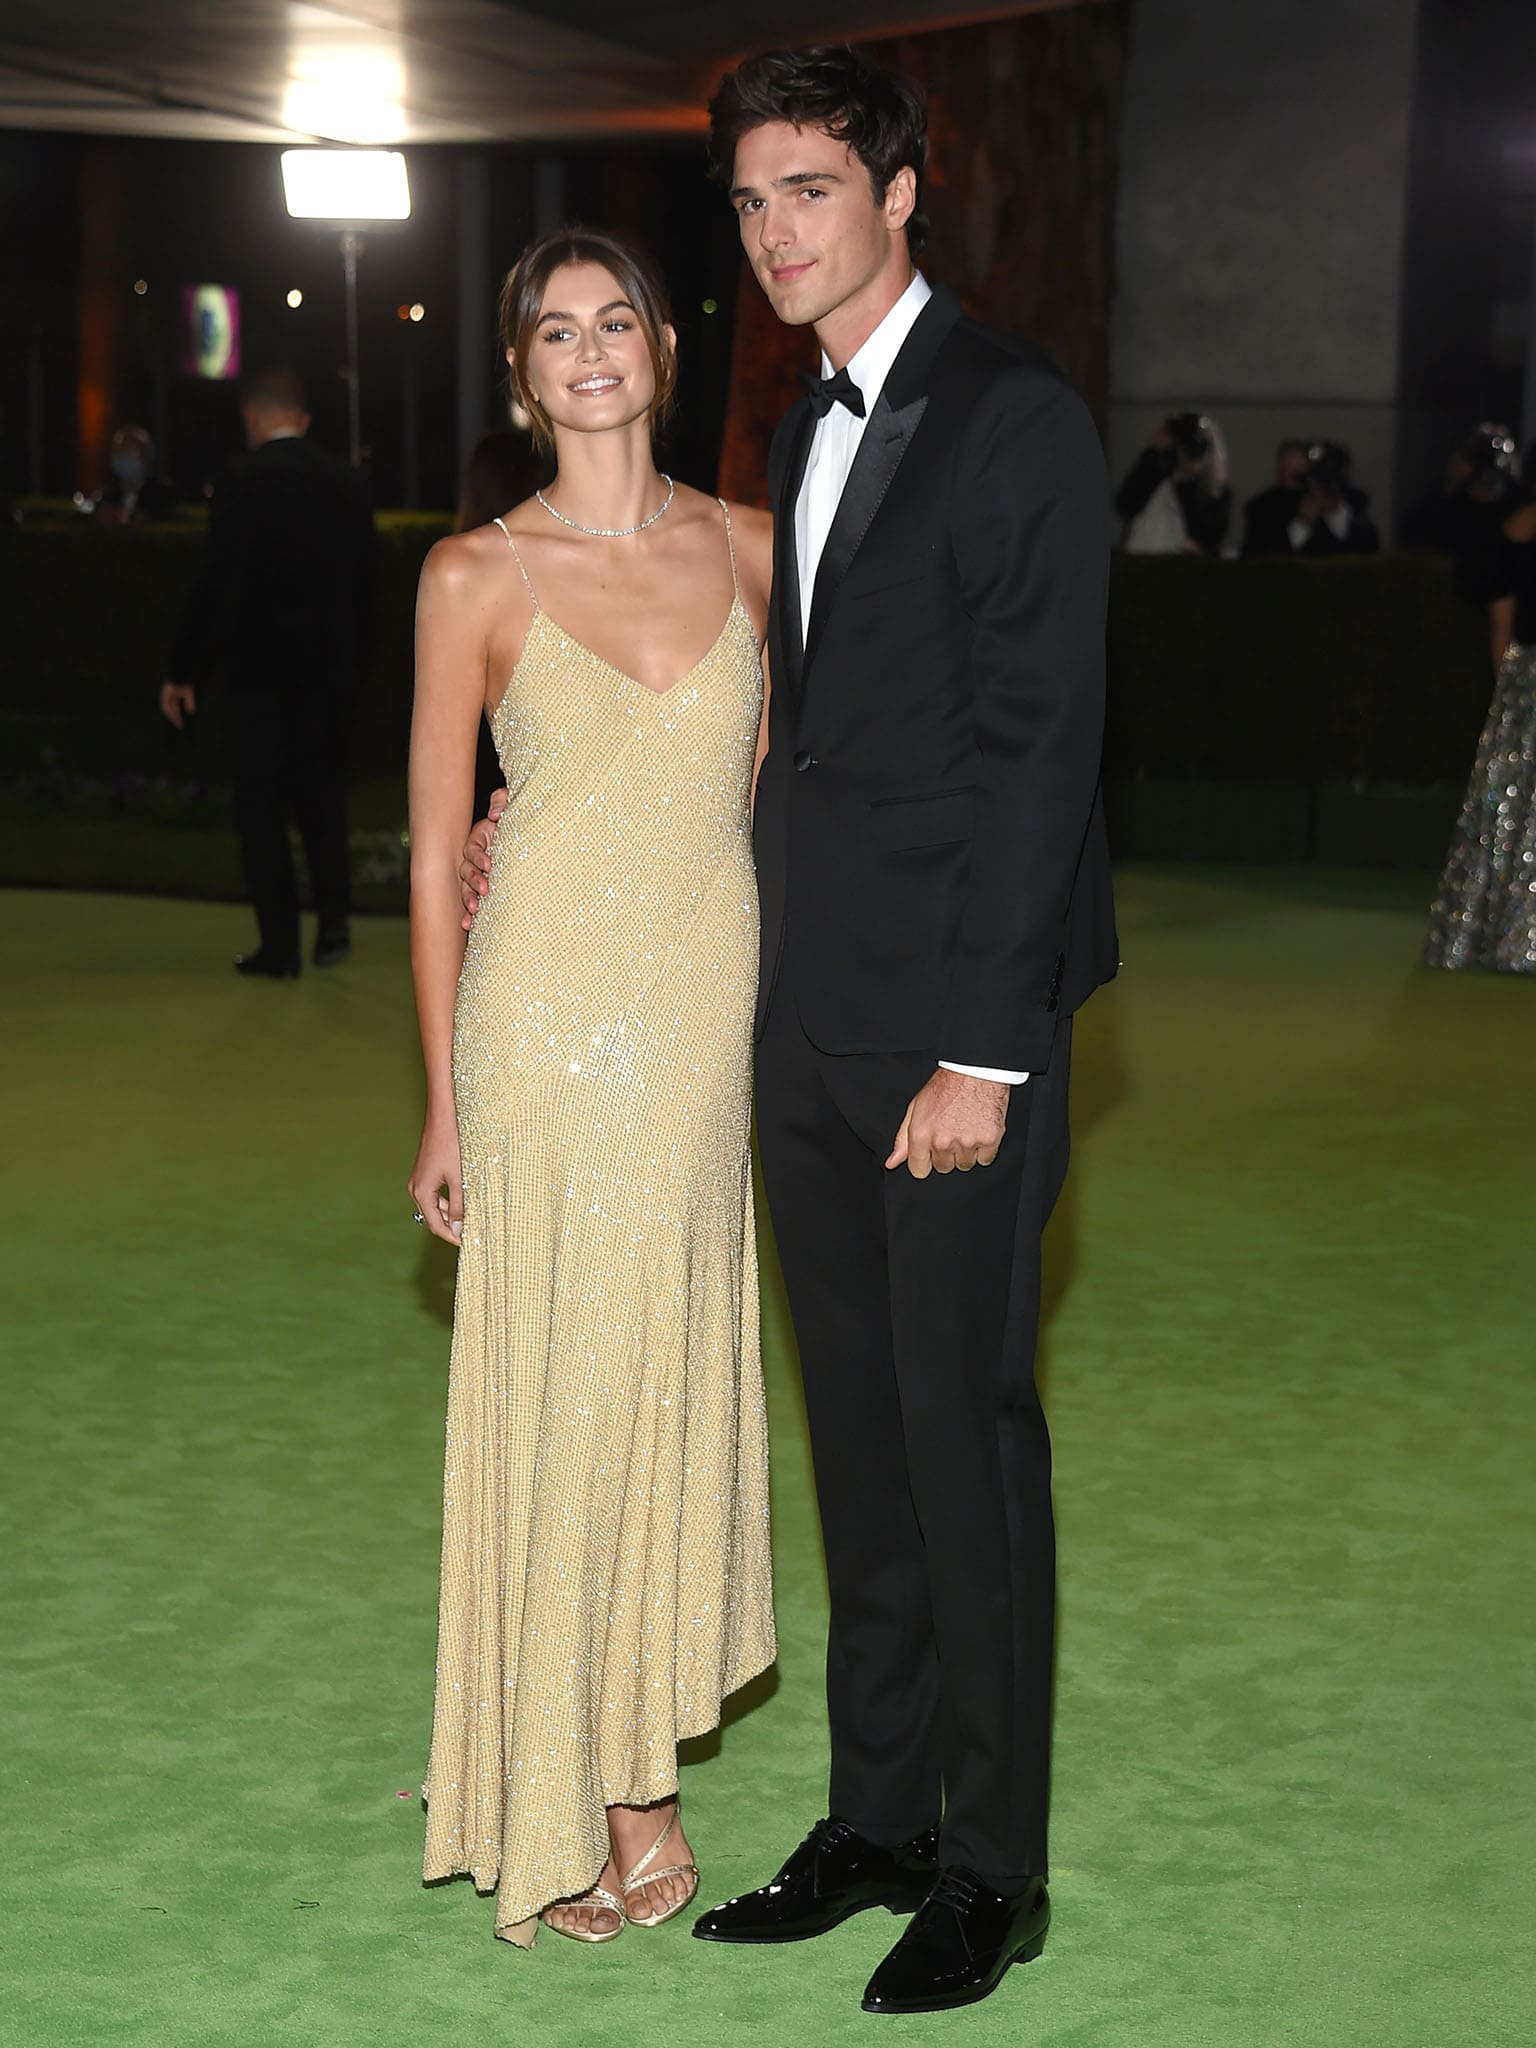 Kaia Gerber showcases her supermodel height in a slinky champagne asymmetric gown